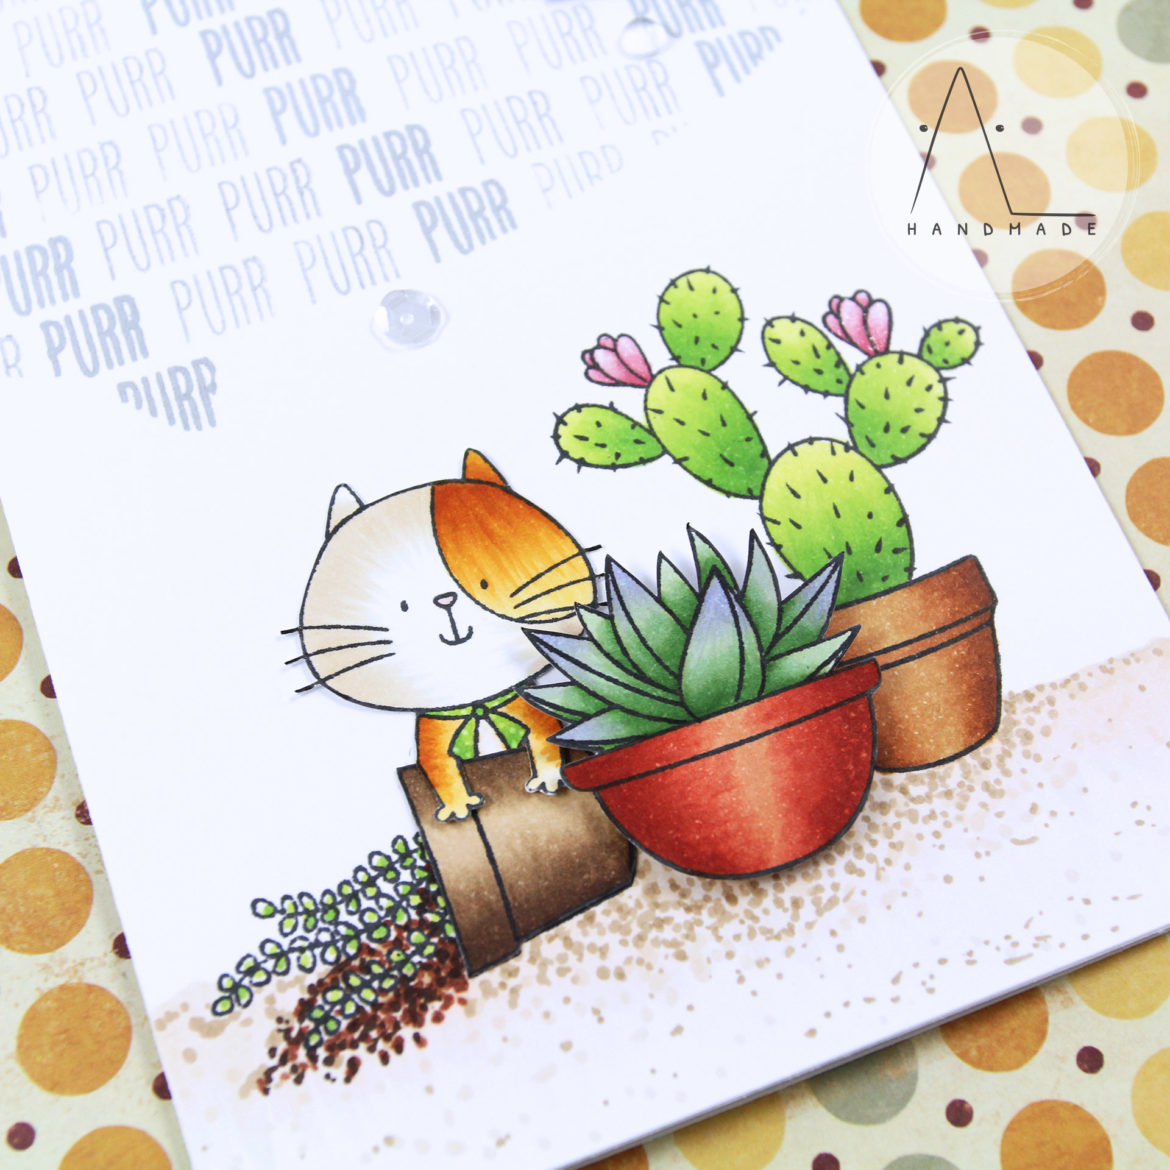 AL handmade - Curious cat among succulents